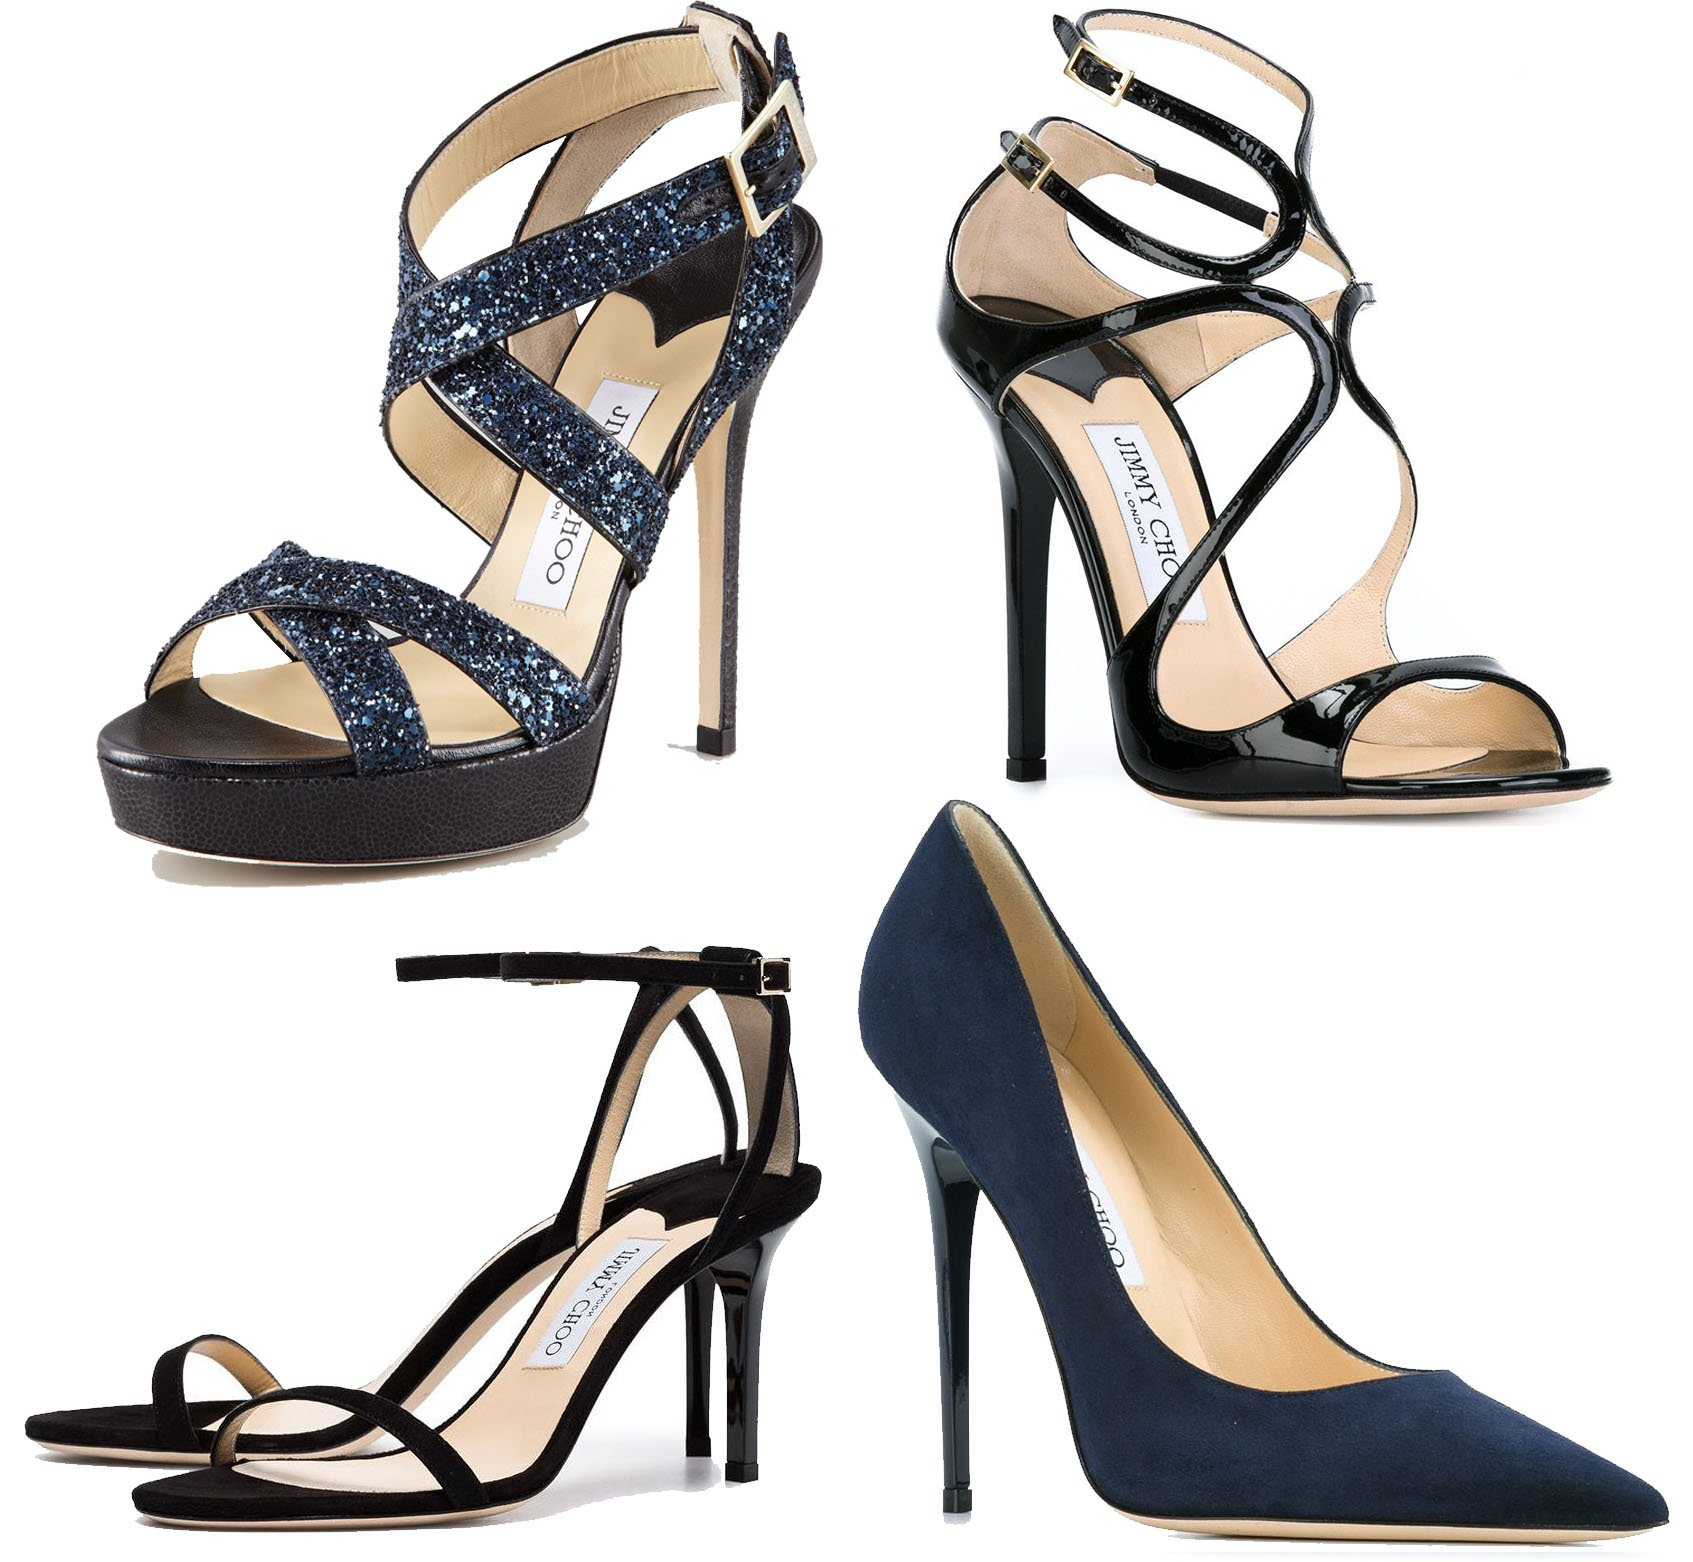 Some of Jimmy Choo's popular styles include the Vamp, Lance, Minny, and Anouk